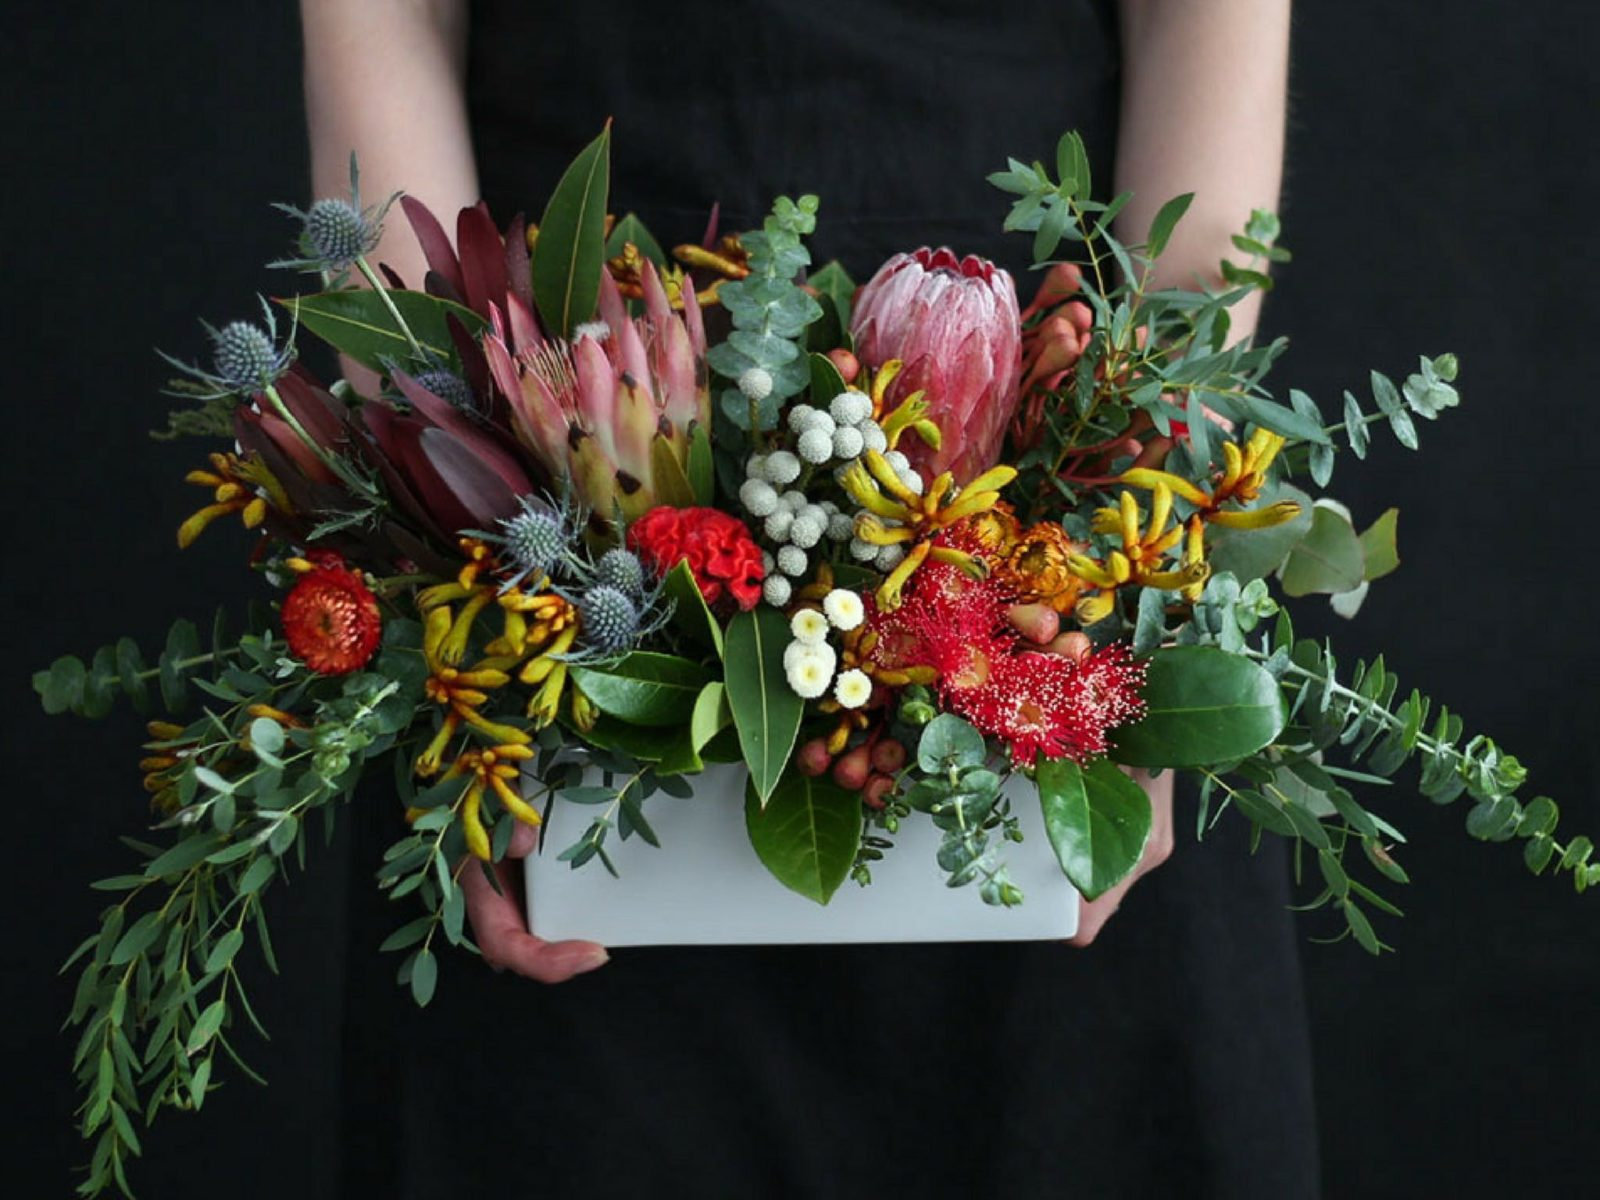 Join us for a fun and creative afternoon at our flower workshop